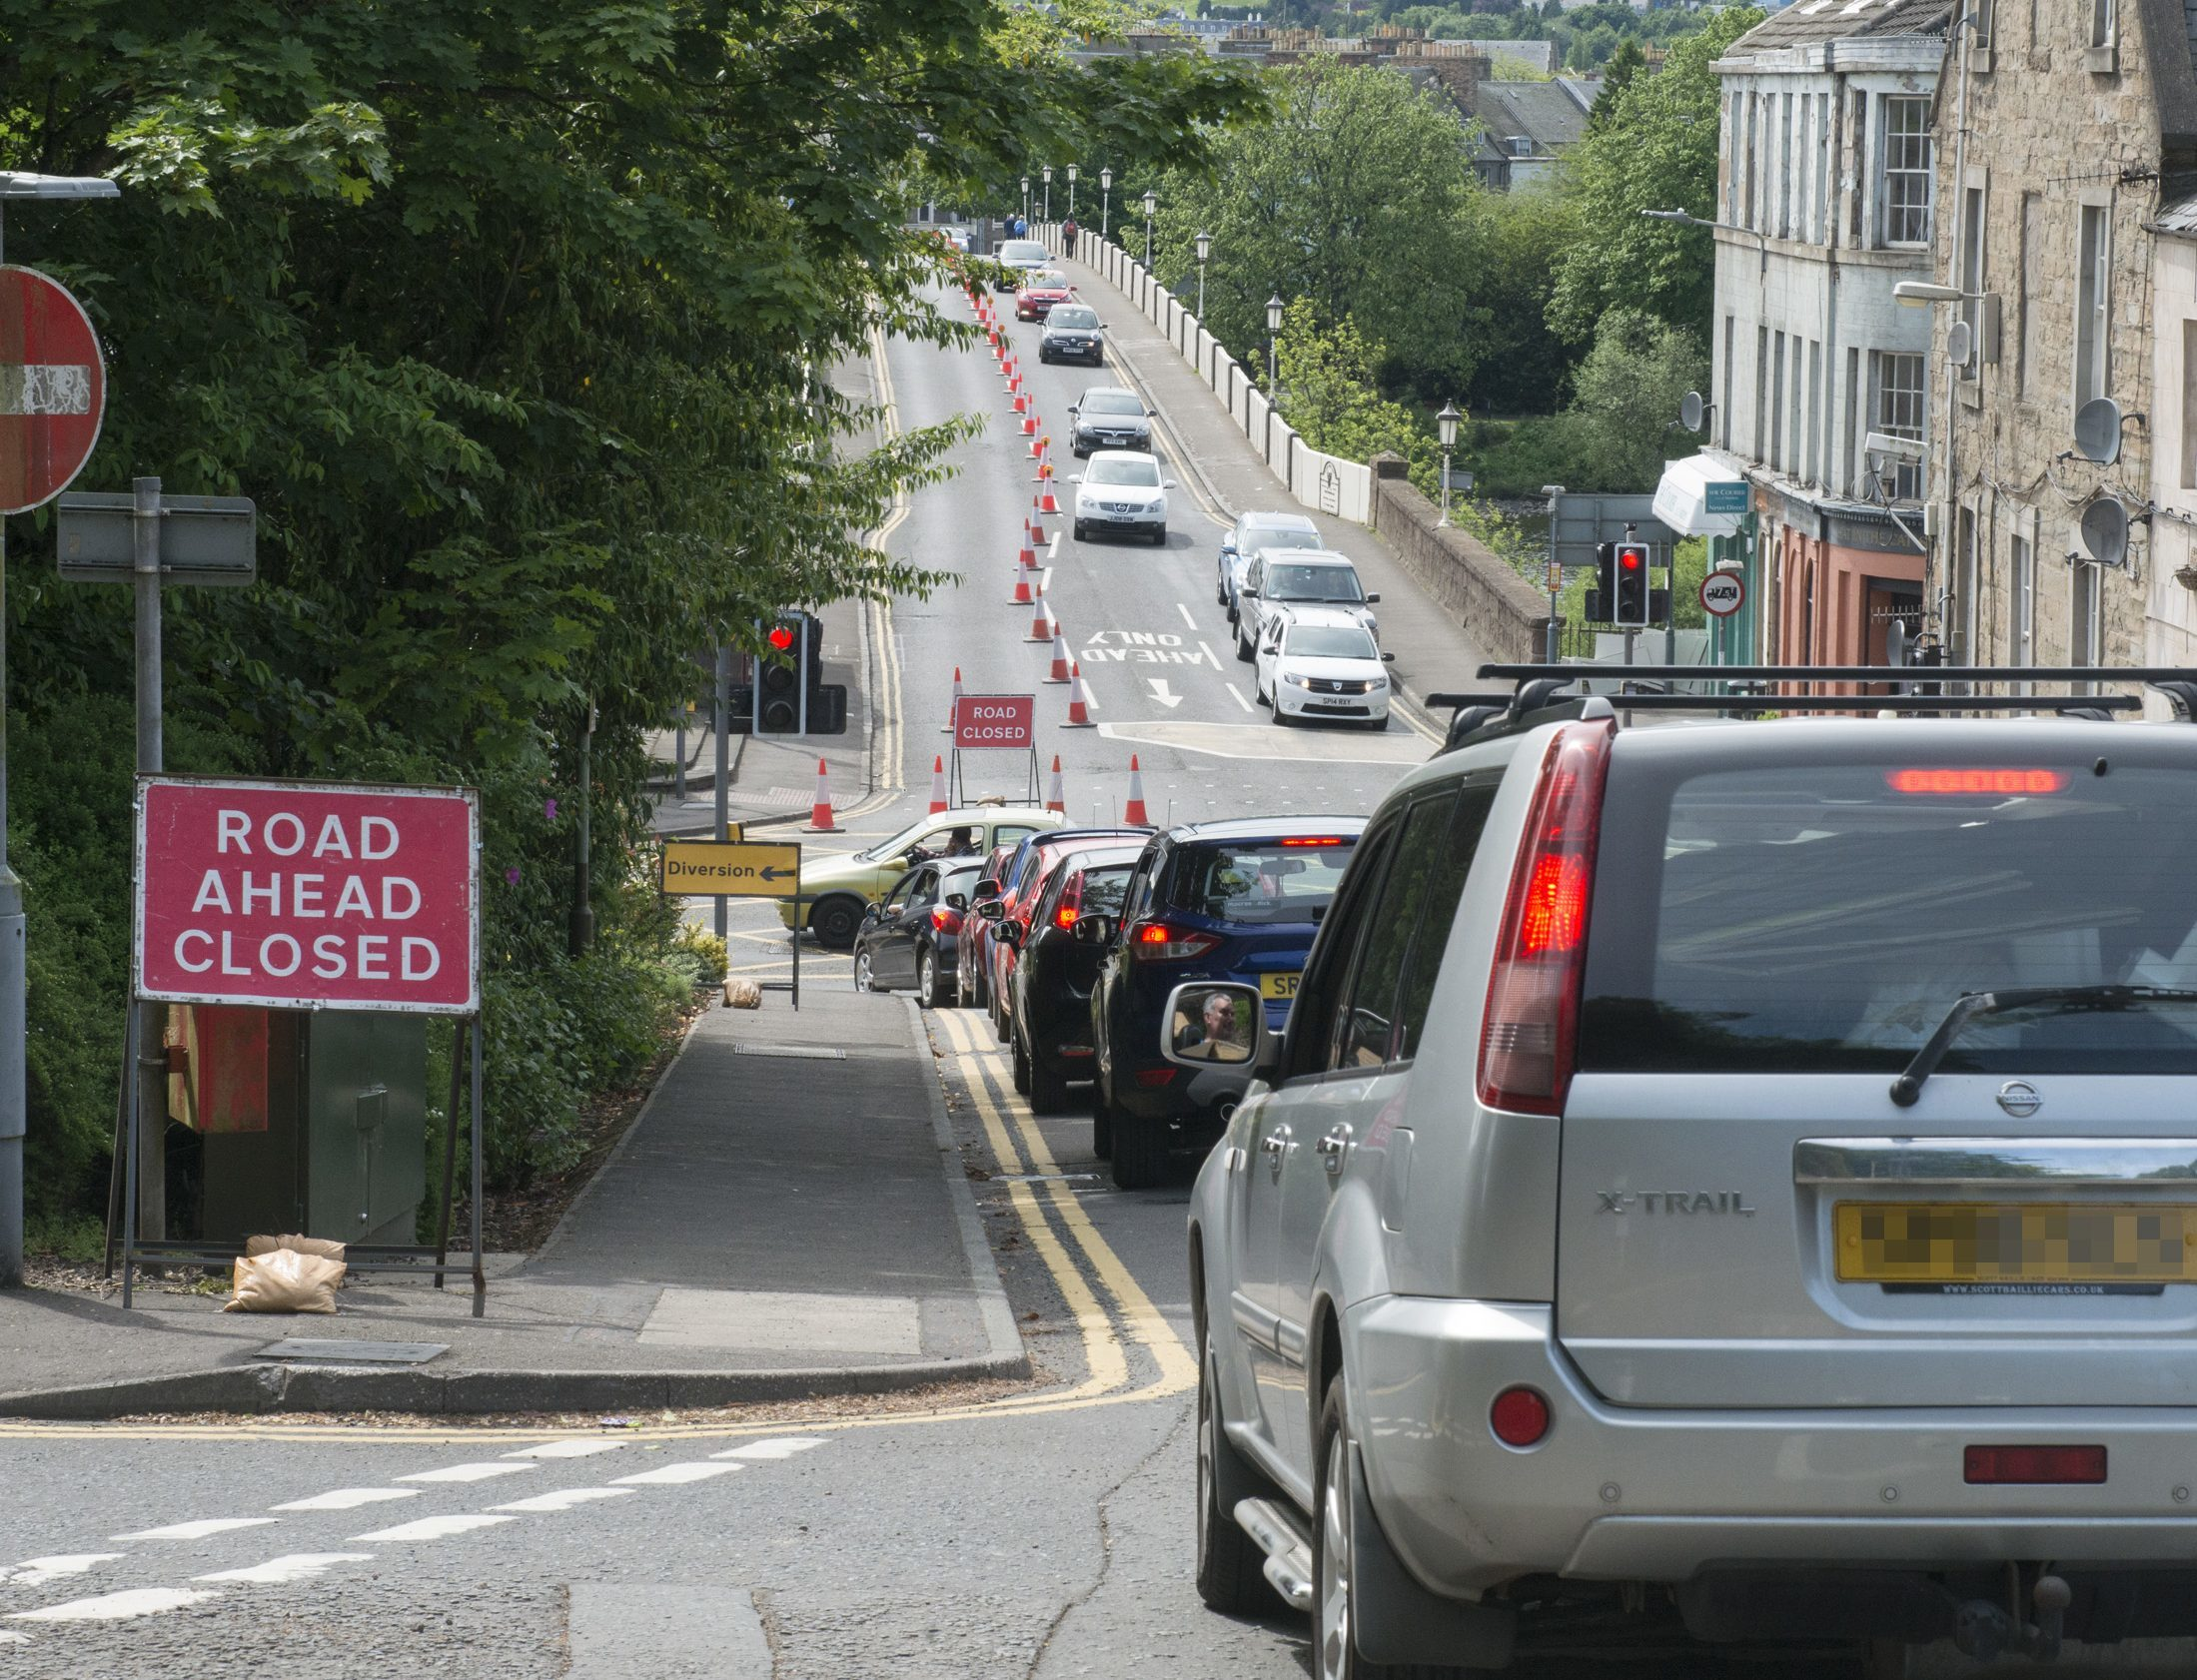 The phantom lane closure which caused the tailbacks.